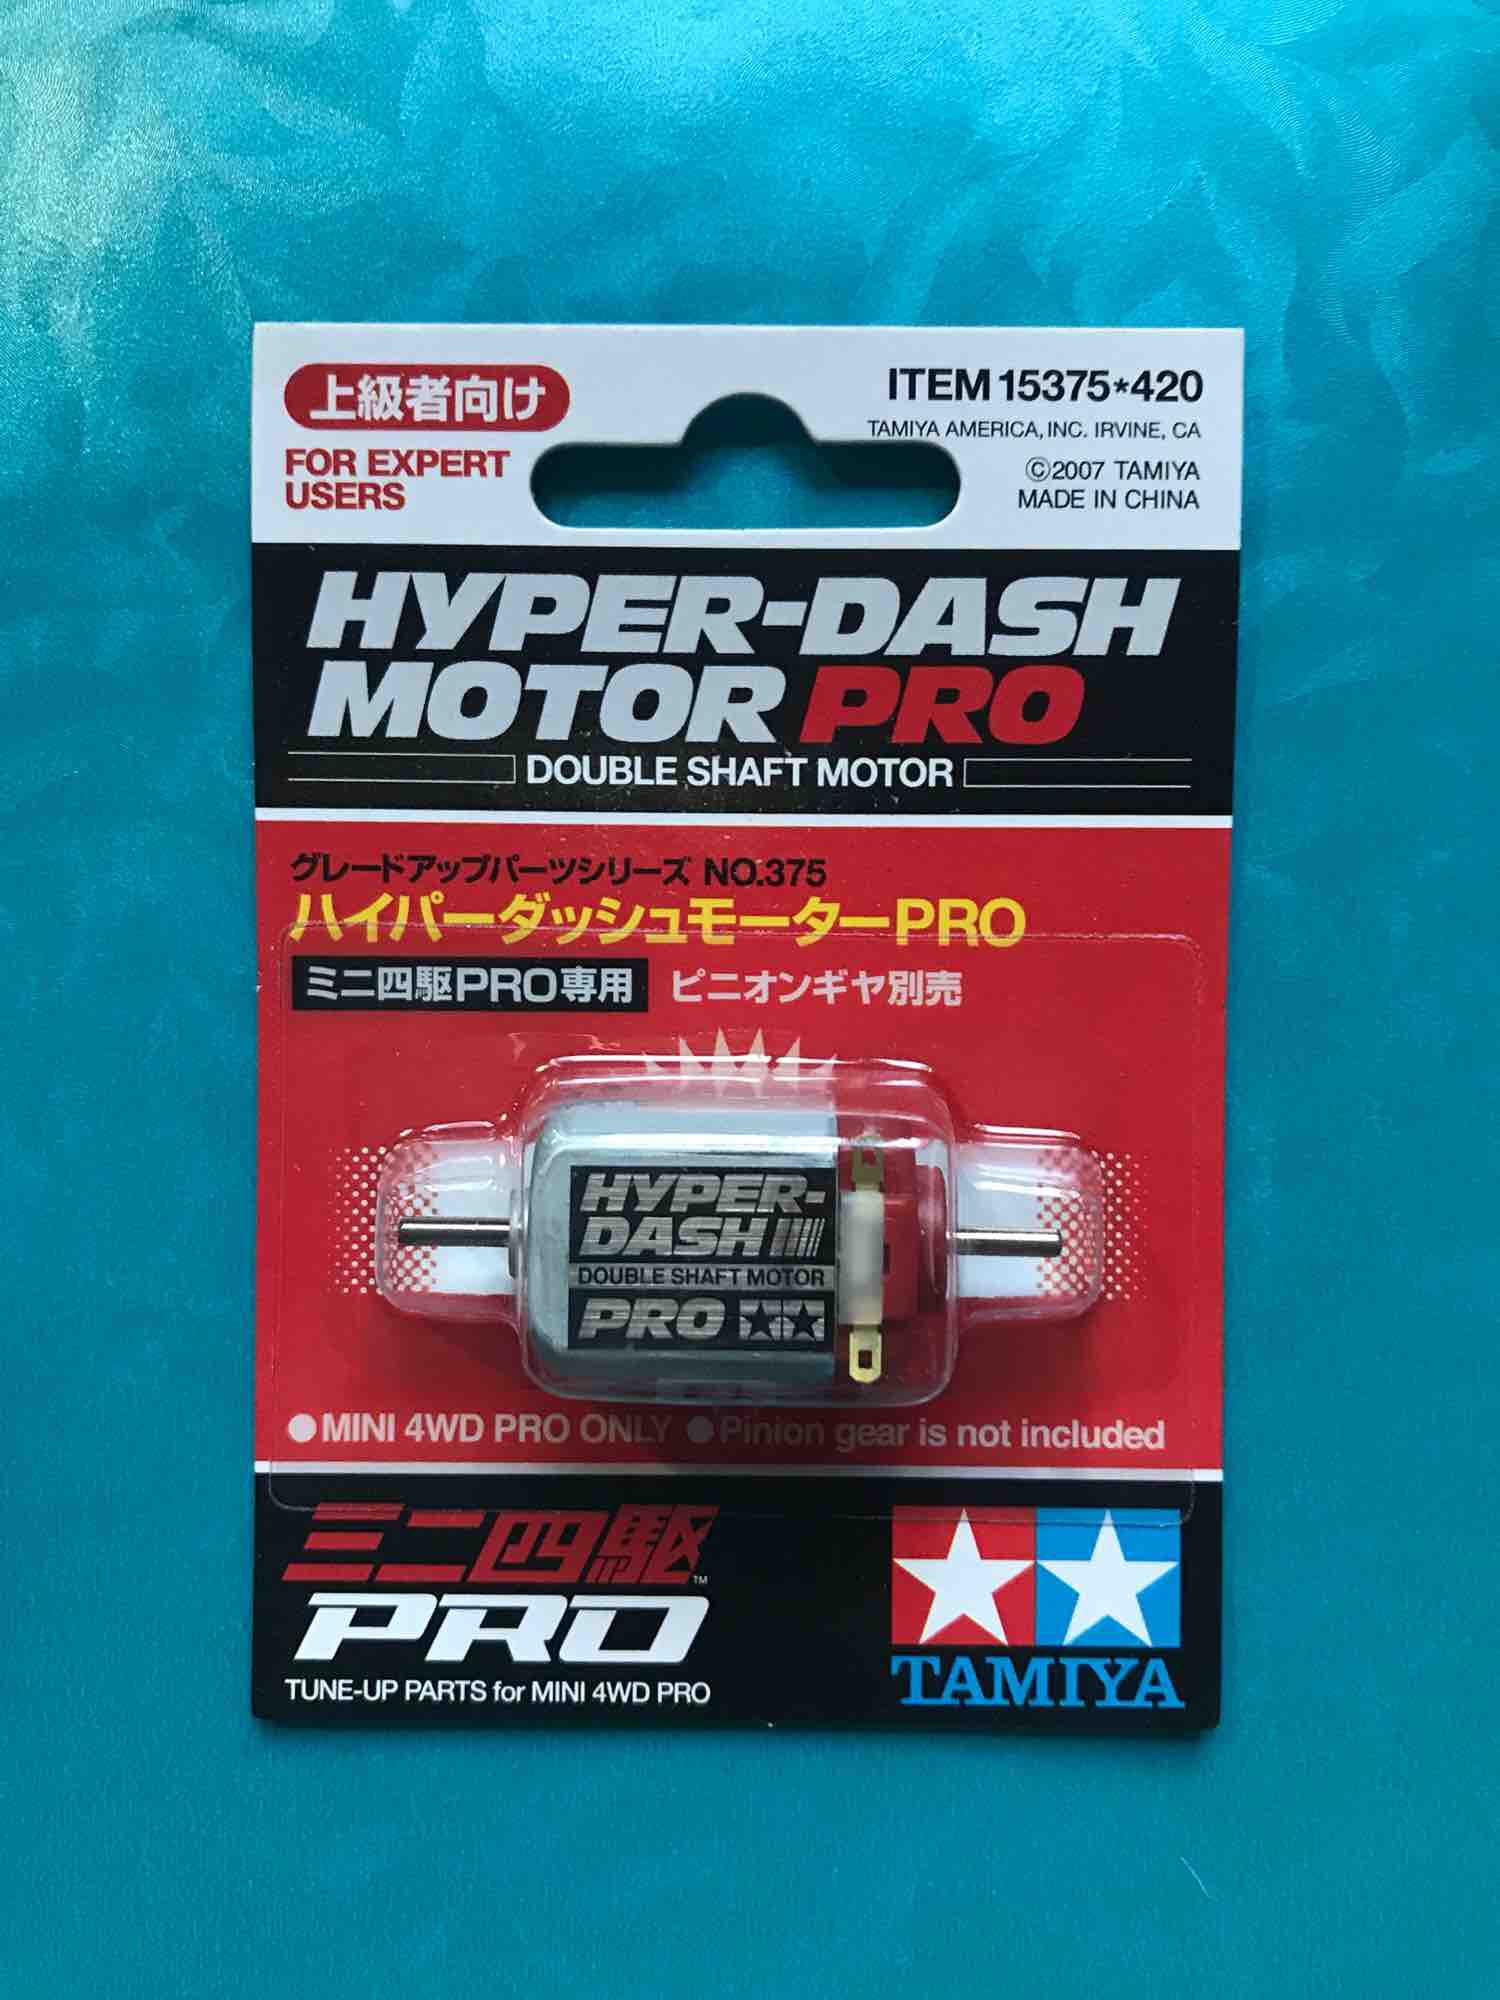 Tamiya Philippines Price List Mini Racer Motor Dynamo And Control Parts Optional 4wd Hyper Dash Pro Double Shaft